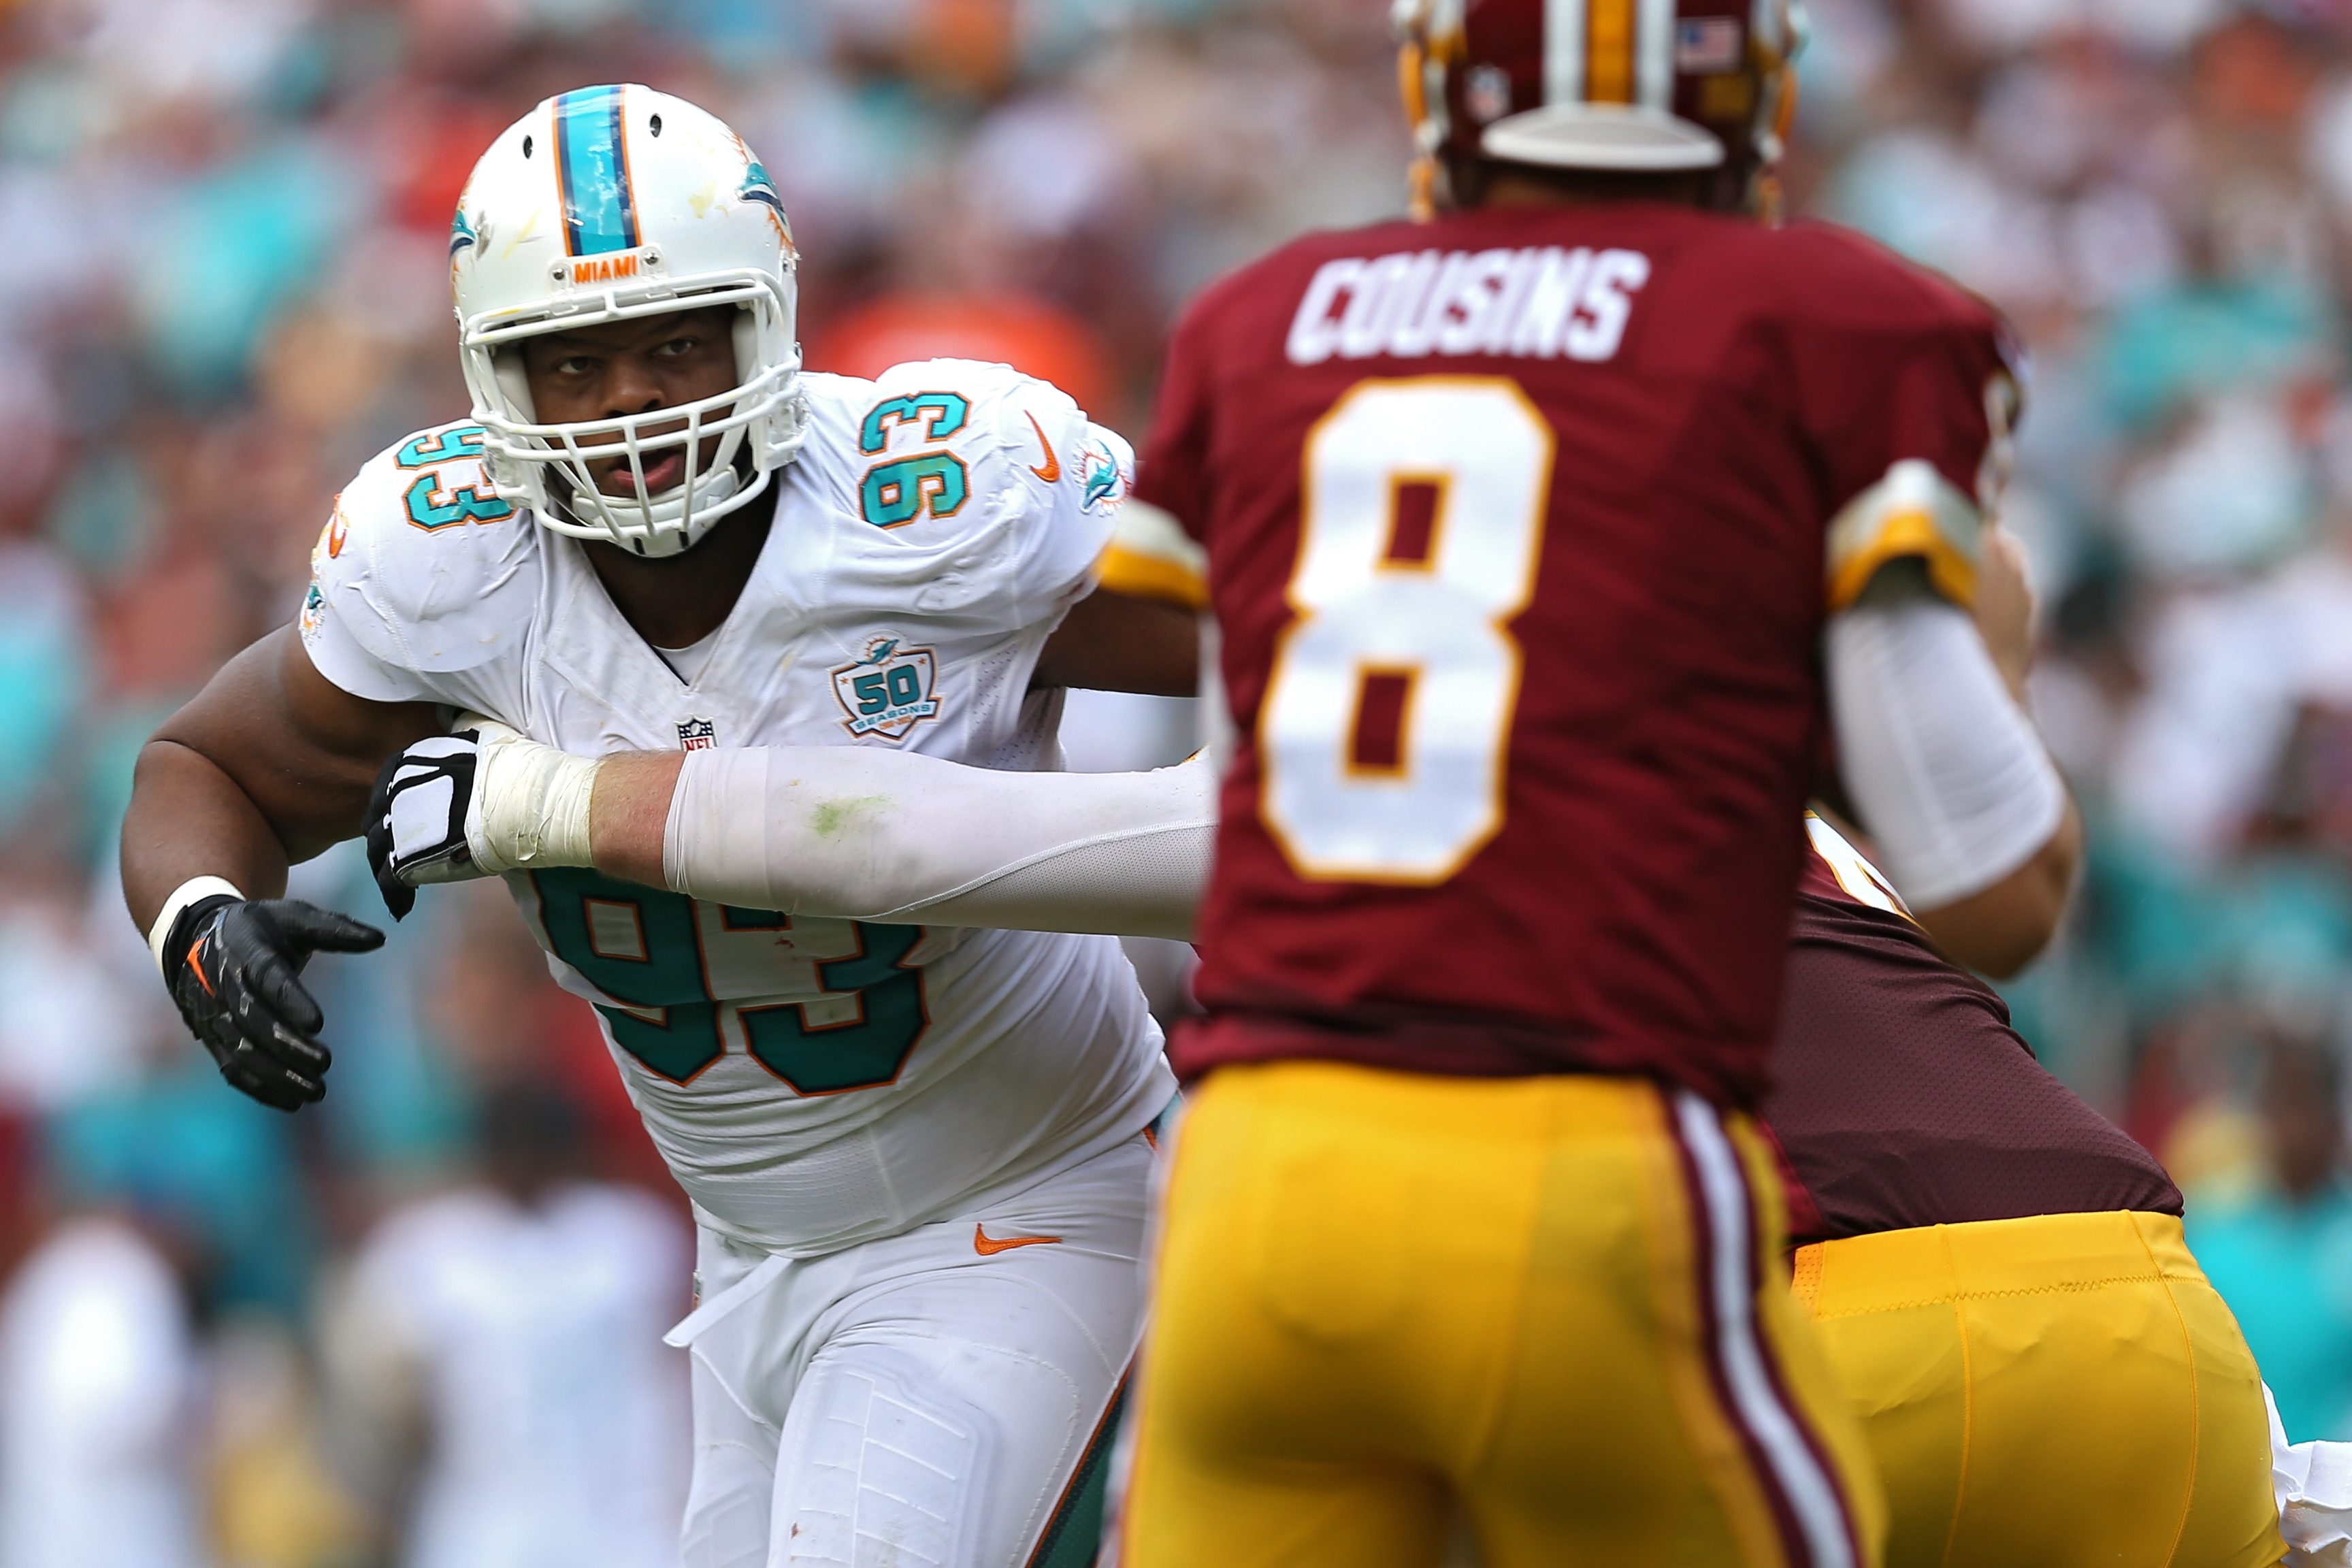 Miami's fate could depend on defensive tackle Ndamukong Suh playing up to his free-agency fueled paycheck.